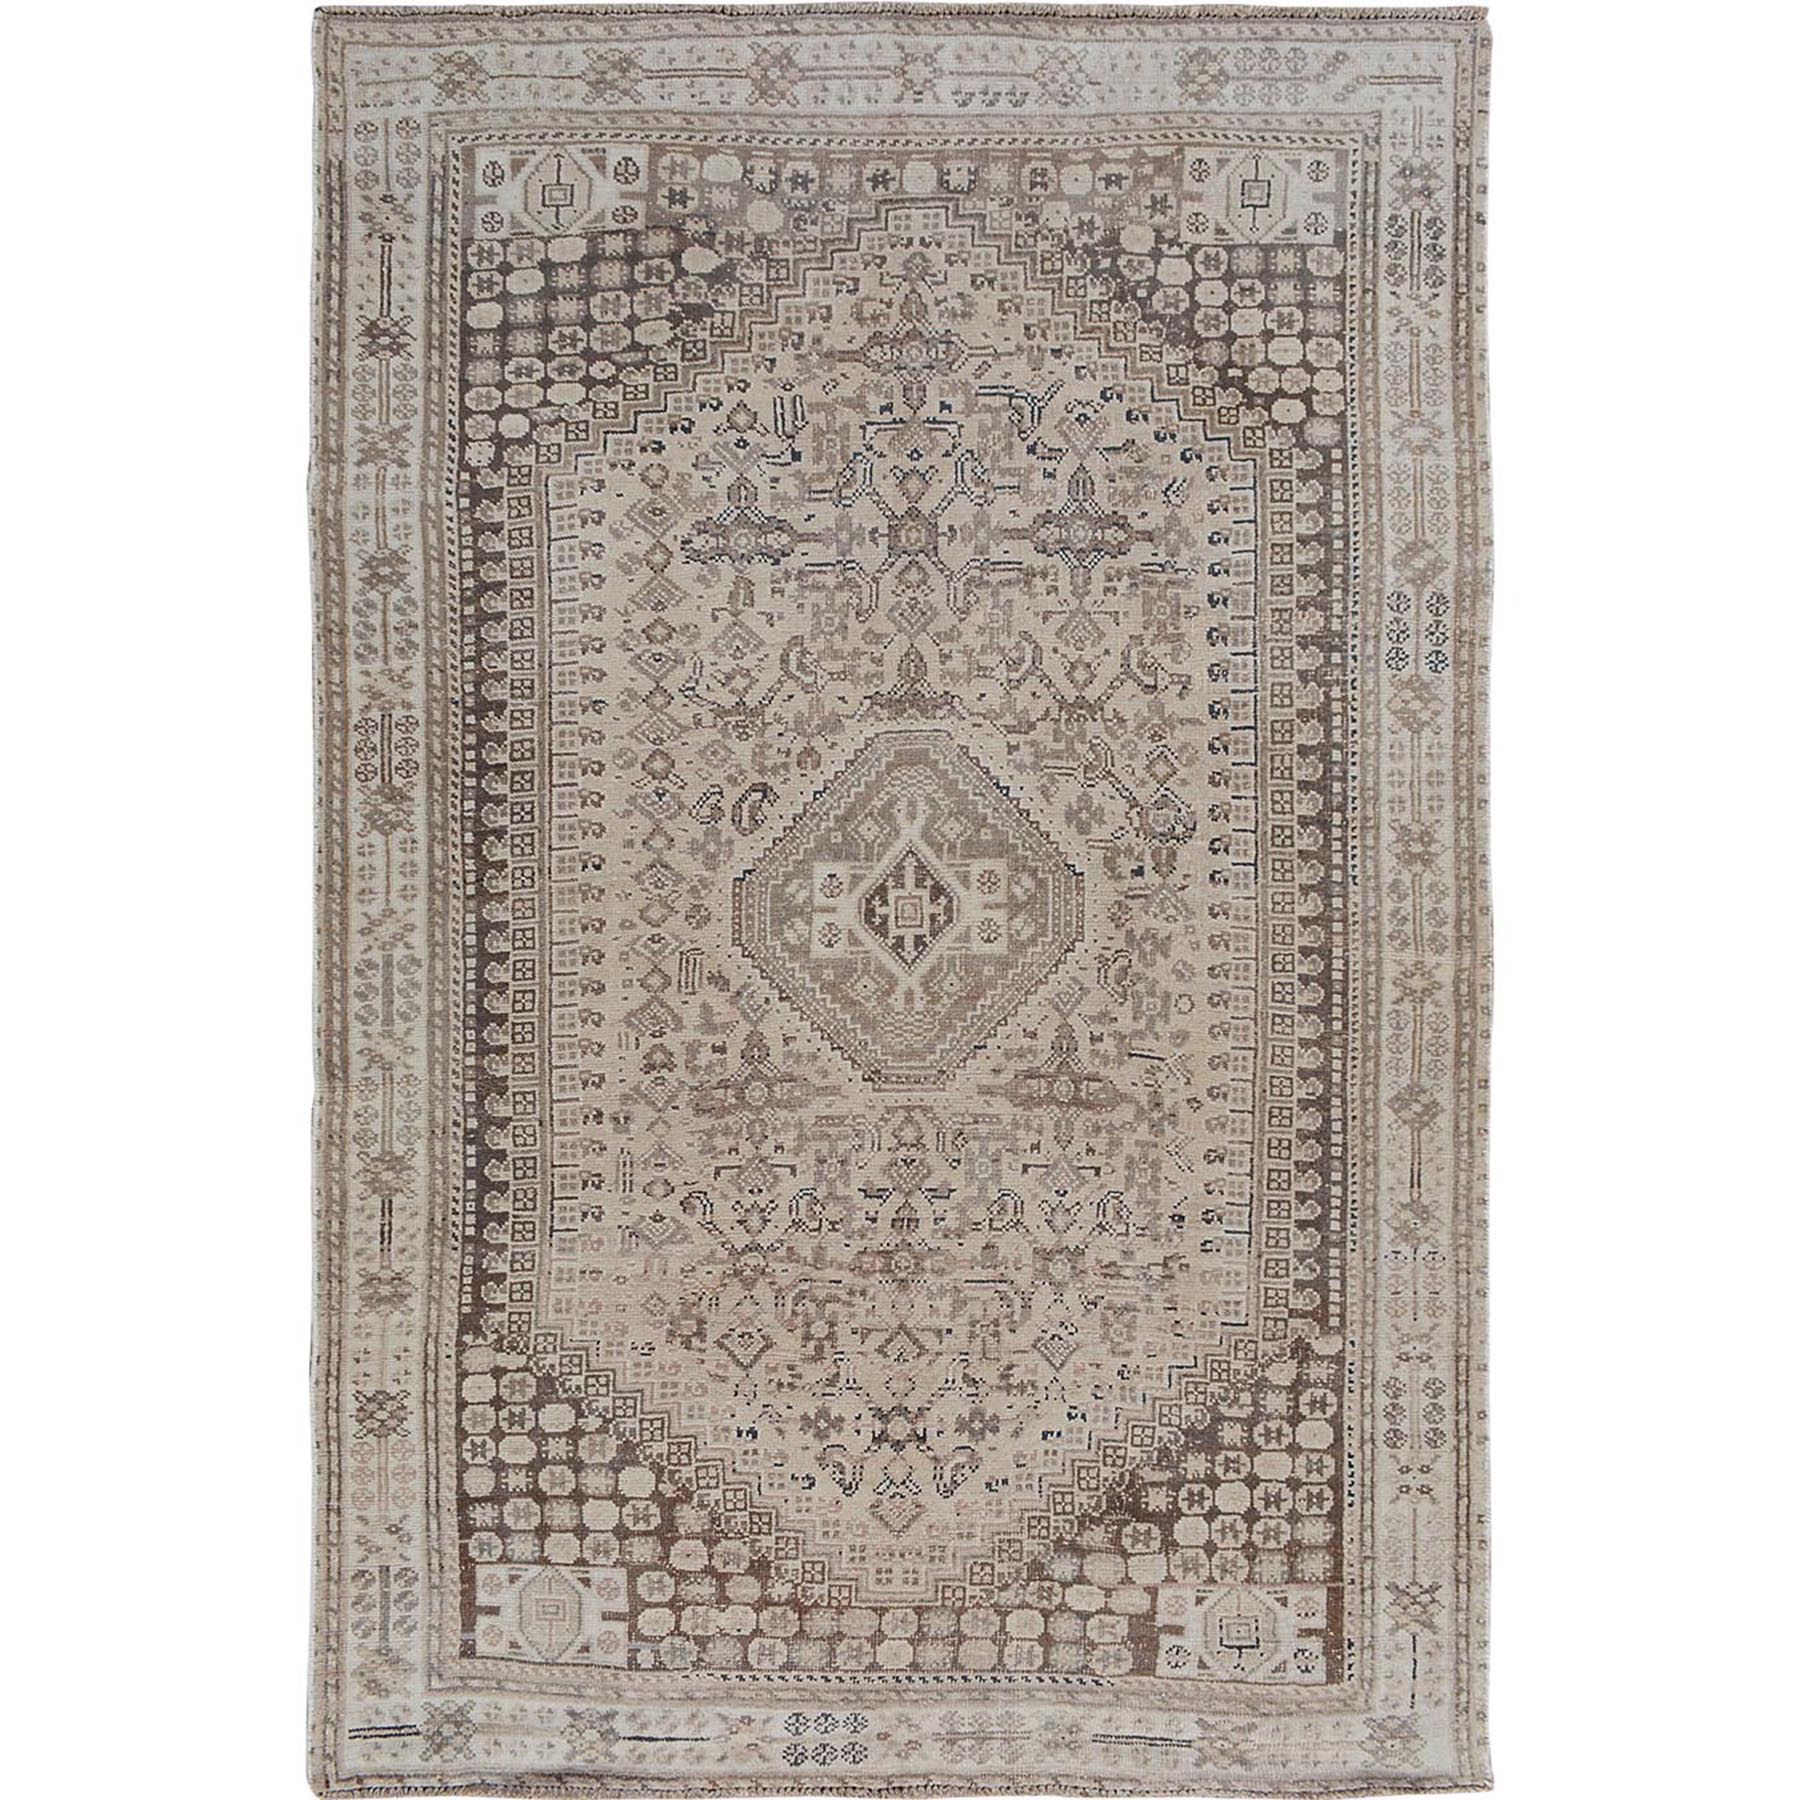 "5'6""x8'2"" Natural Colors Old and Worn Down Persian Qashqai Pure Wool Hand Woven Oriental Rug"